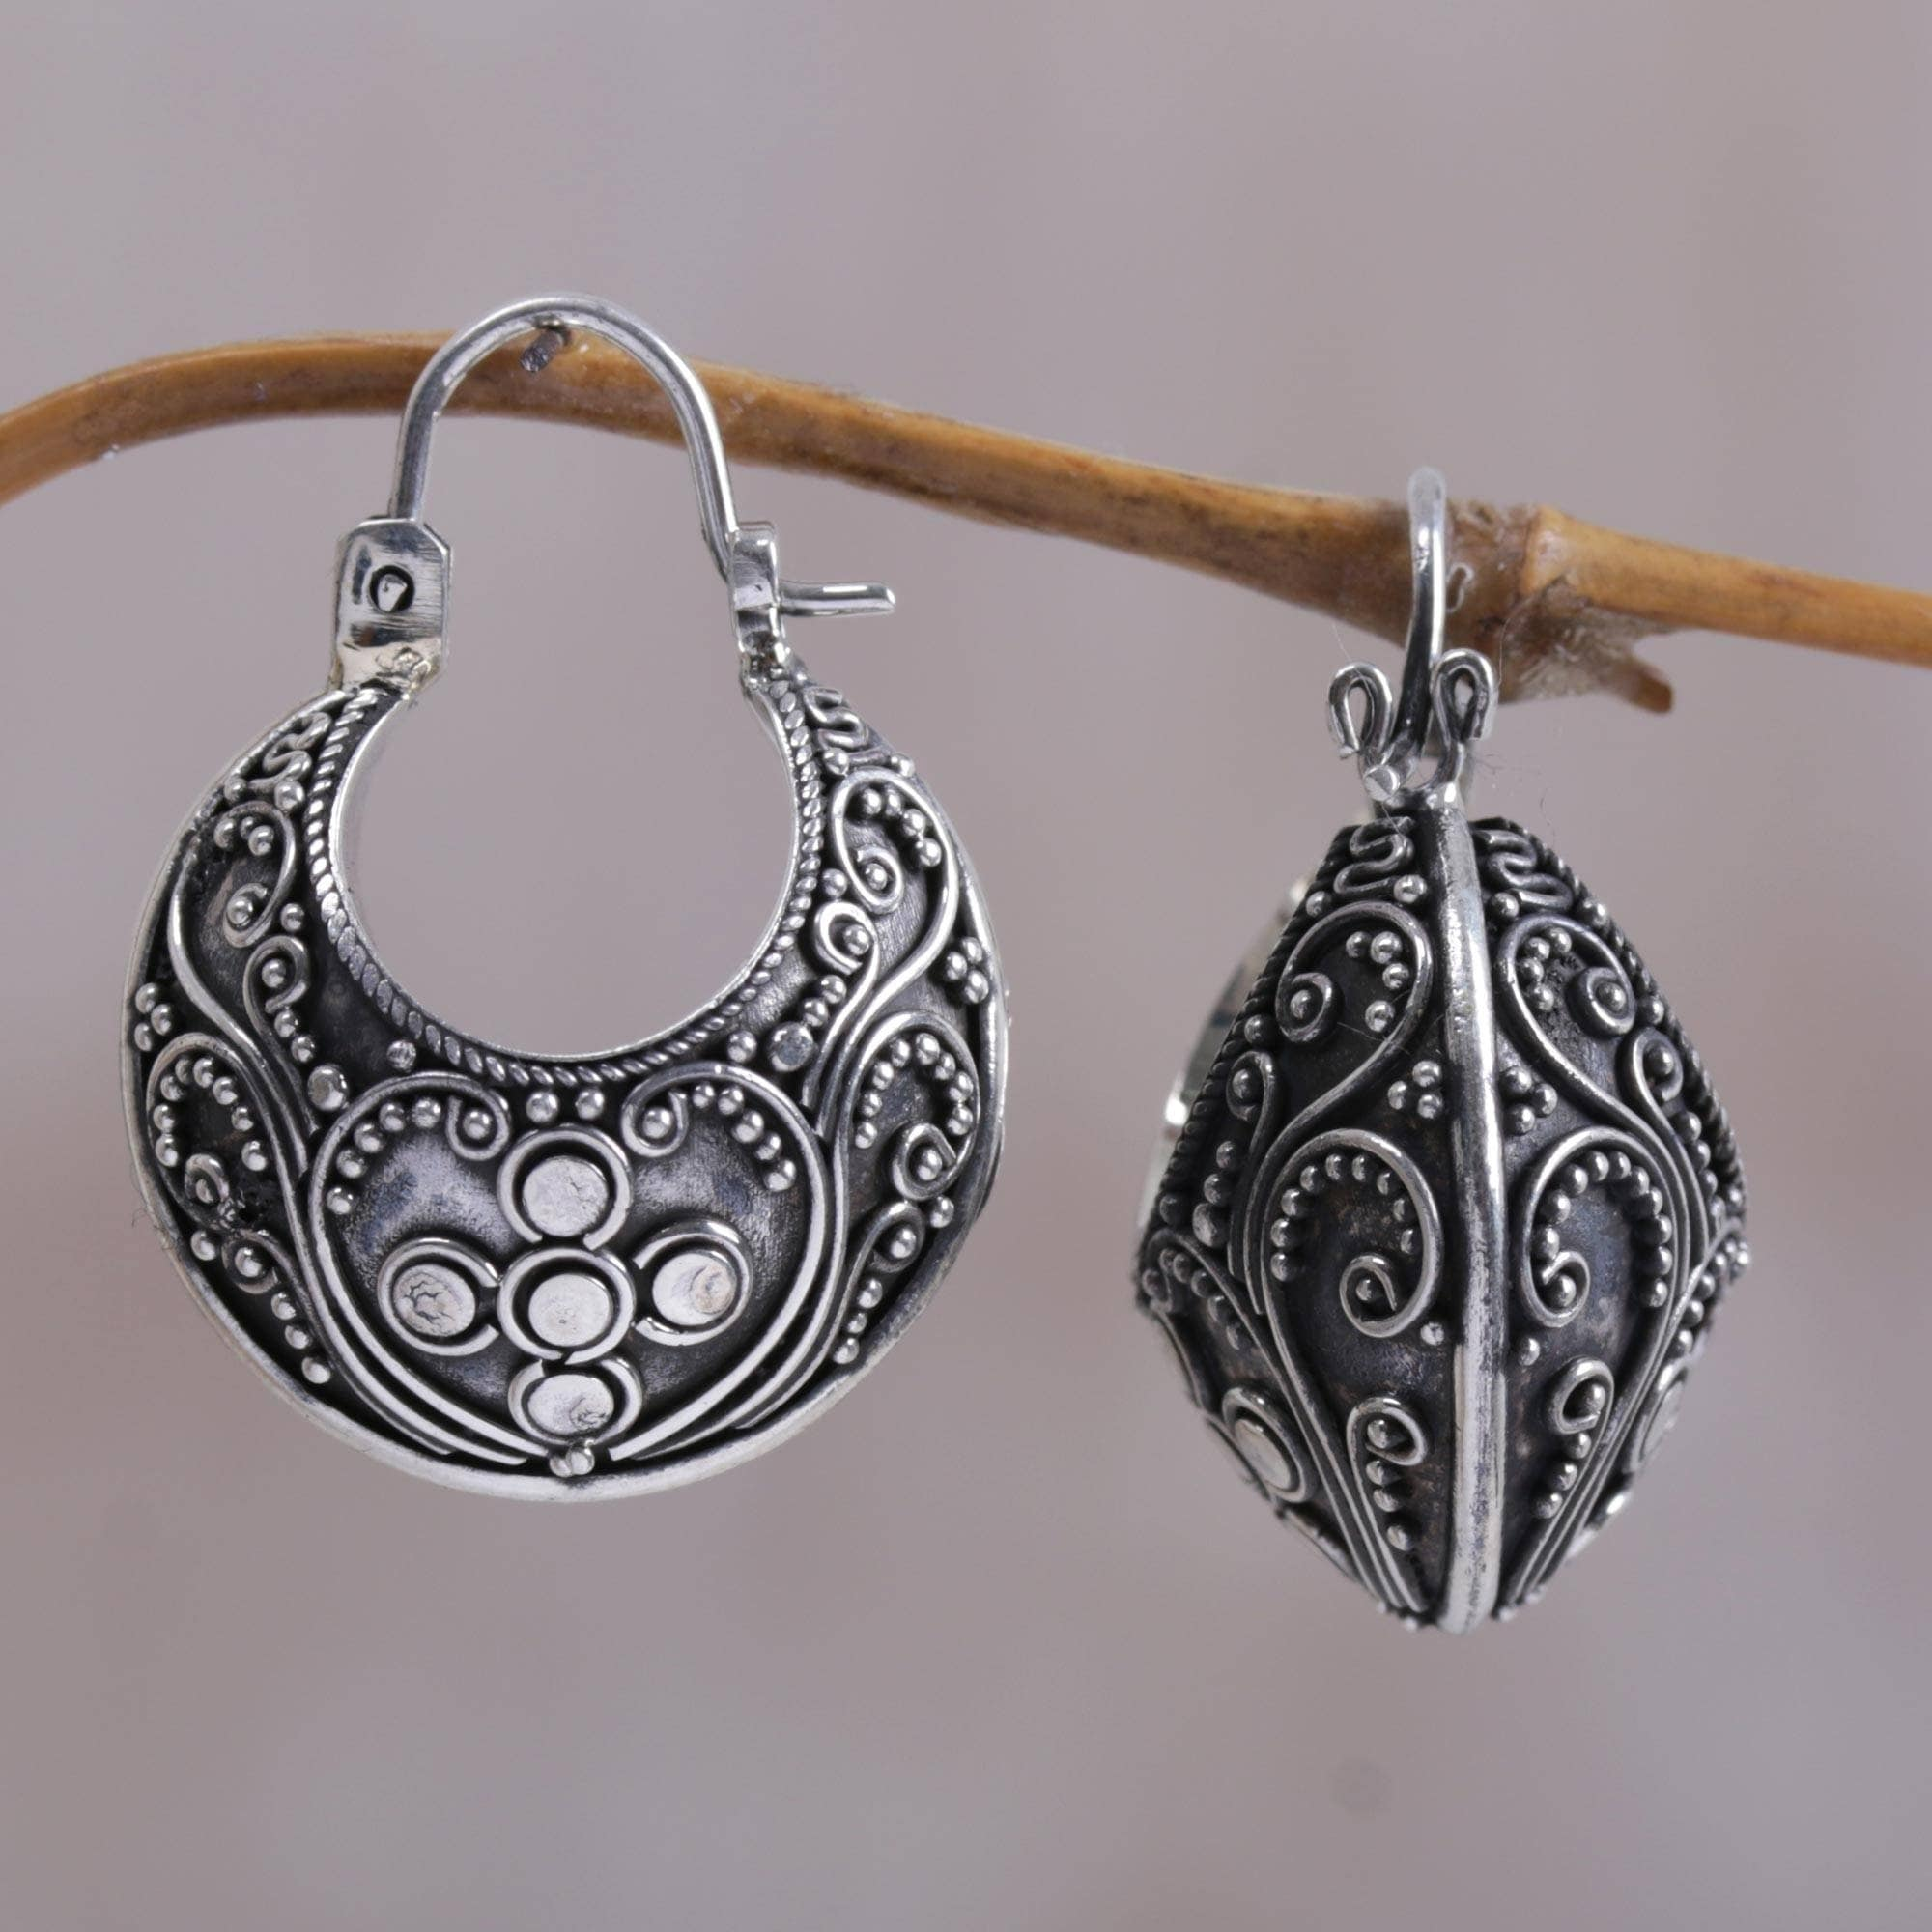 bcad11321 Shop Handmade Sterling Silver 'Paradise' Hoop Earrings (Indonesia) - On  Sale - Free Shipping Today - Overstock - 4428317